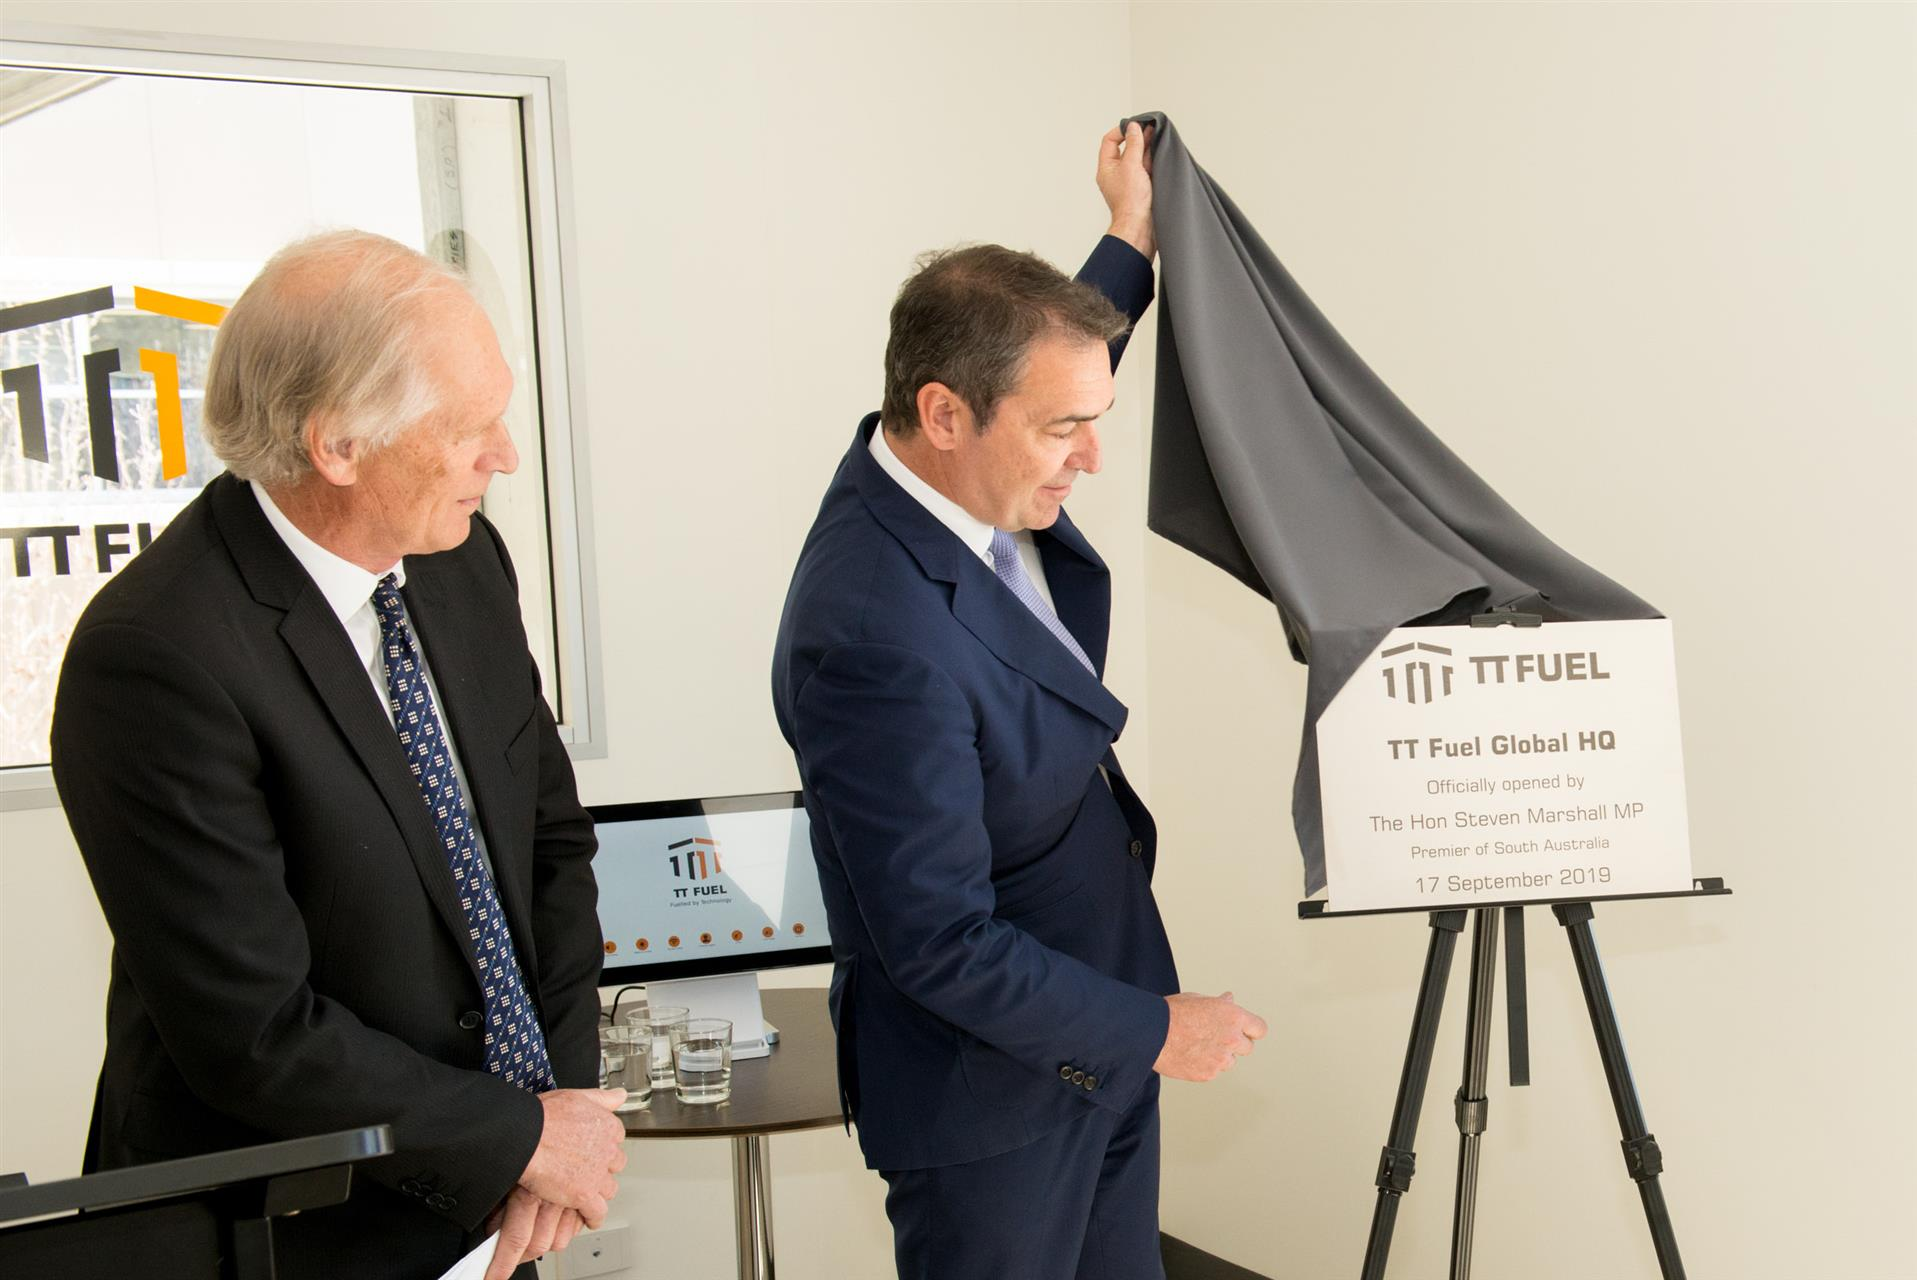 TT Fuel Launches Latest Technology as Premier Opens Global HQ